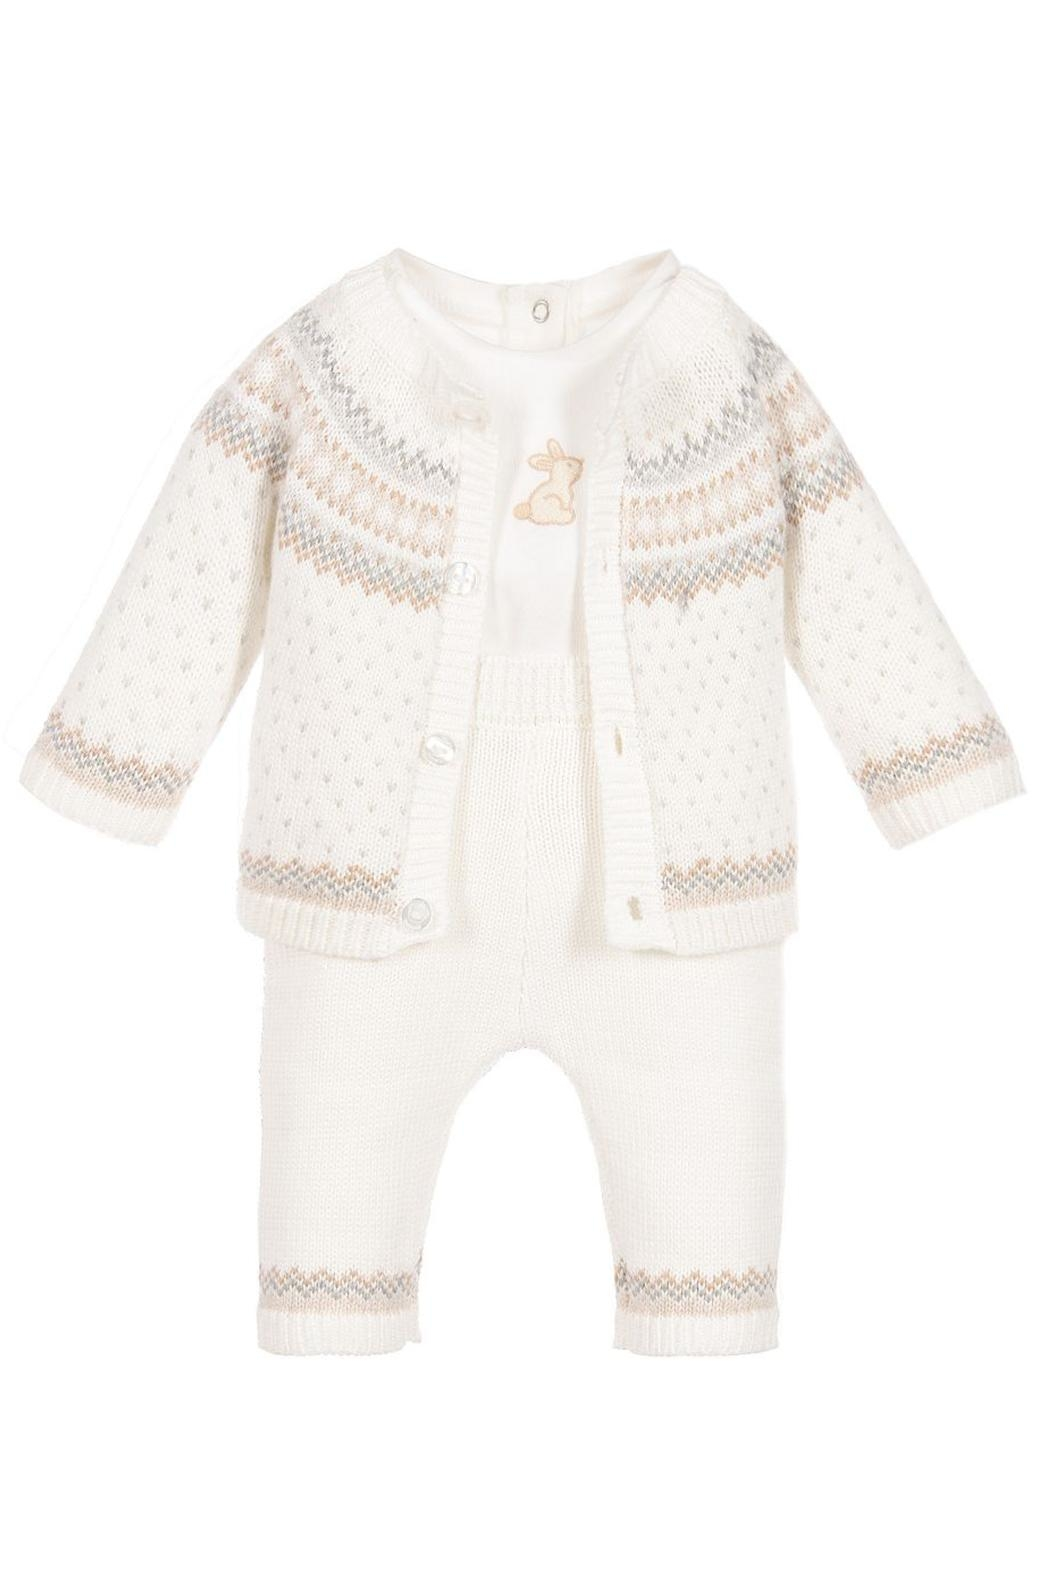 Mayoral Knit Dungarees Set - Front Full Image